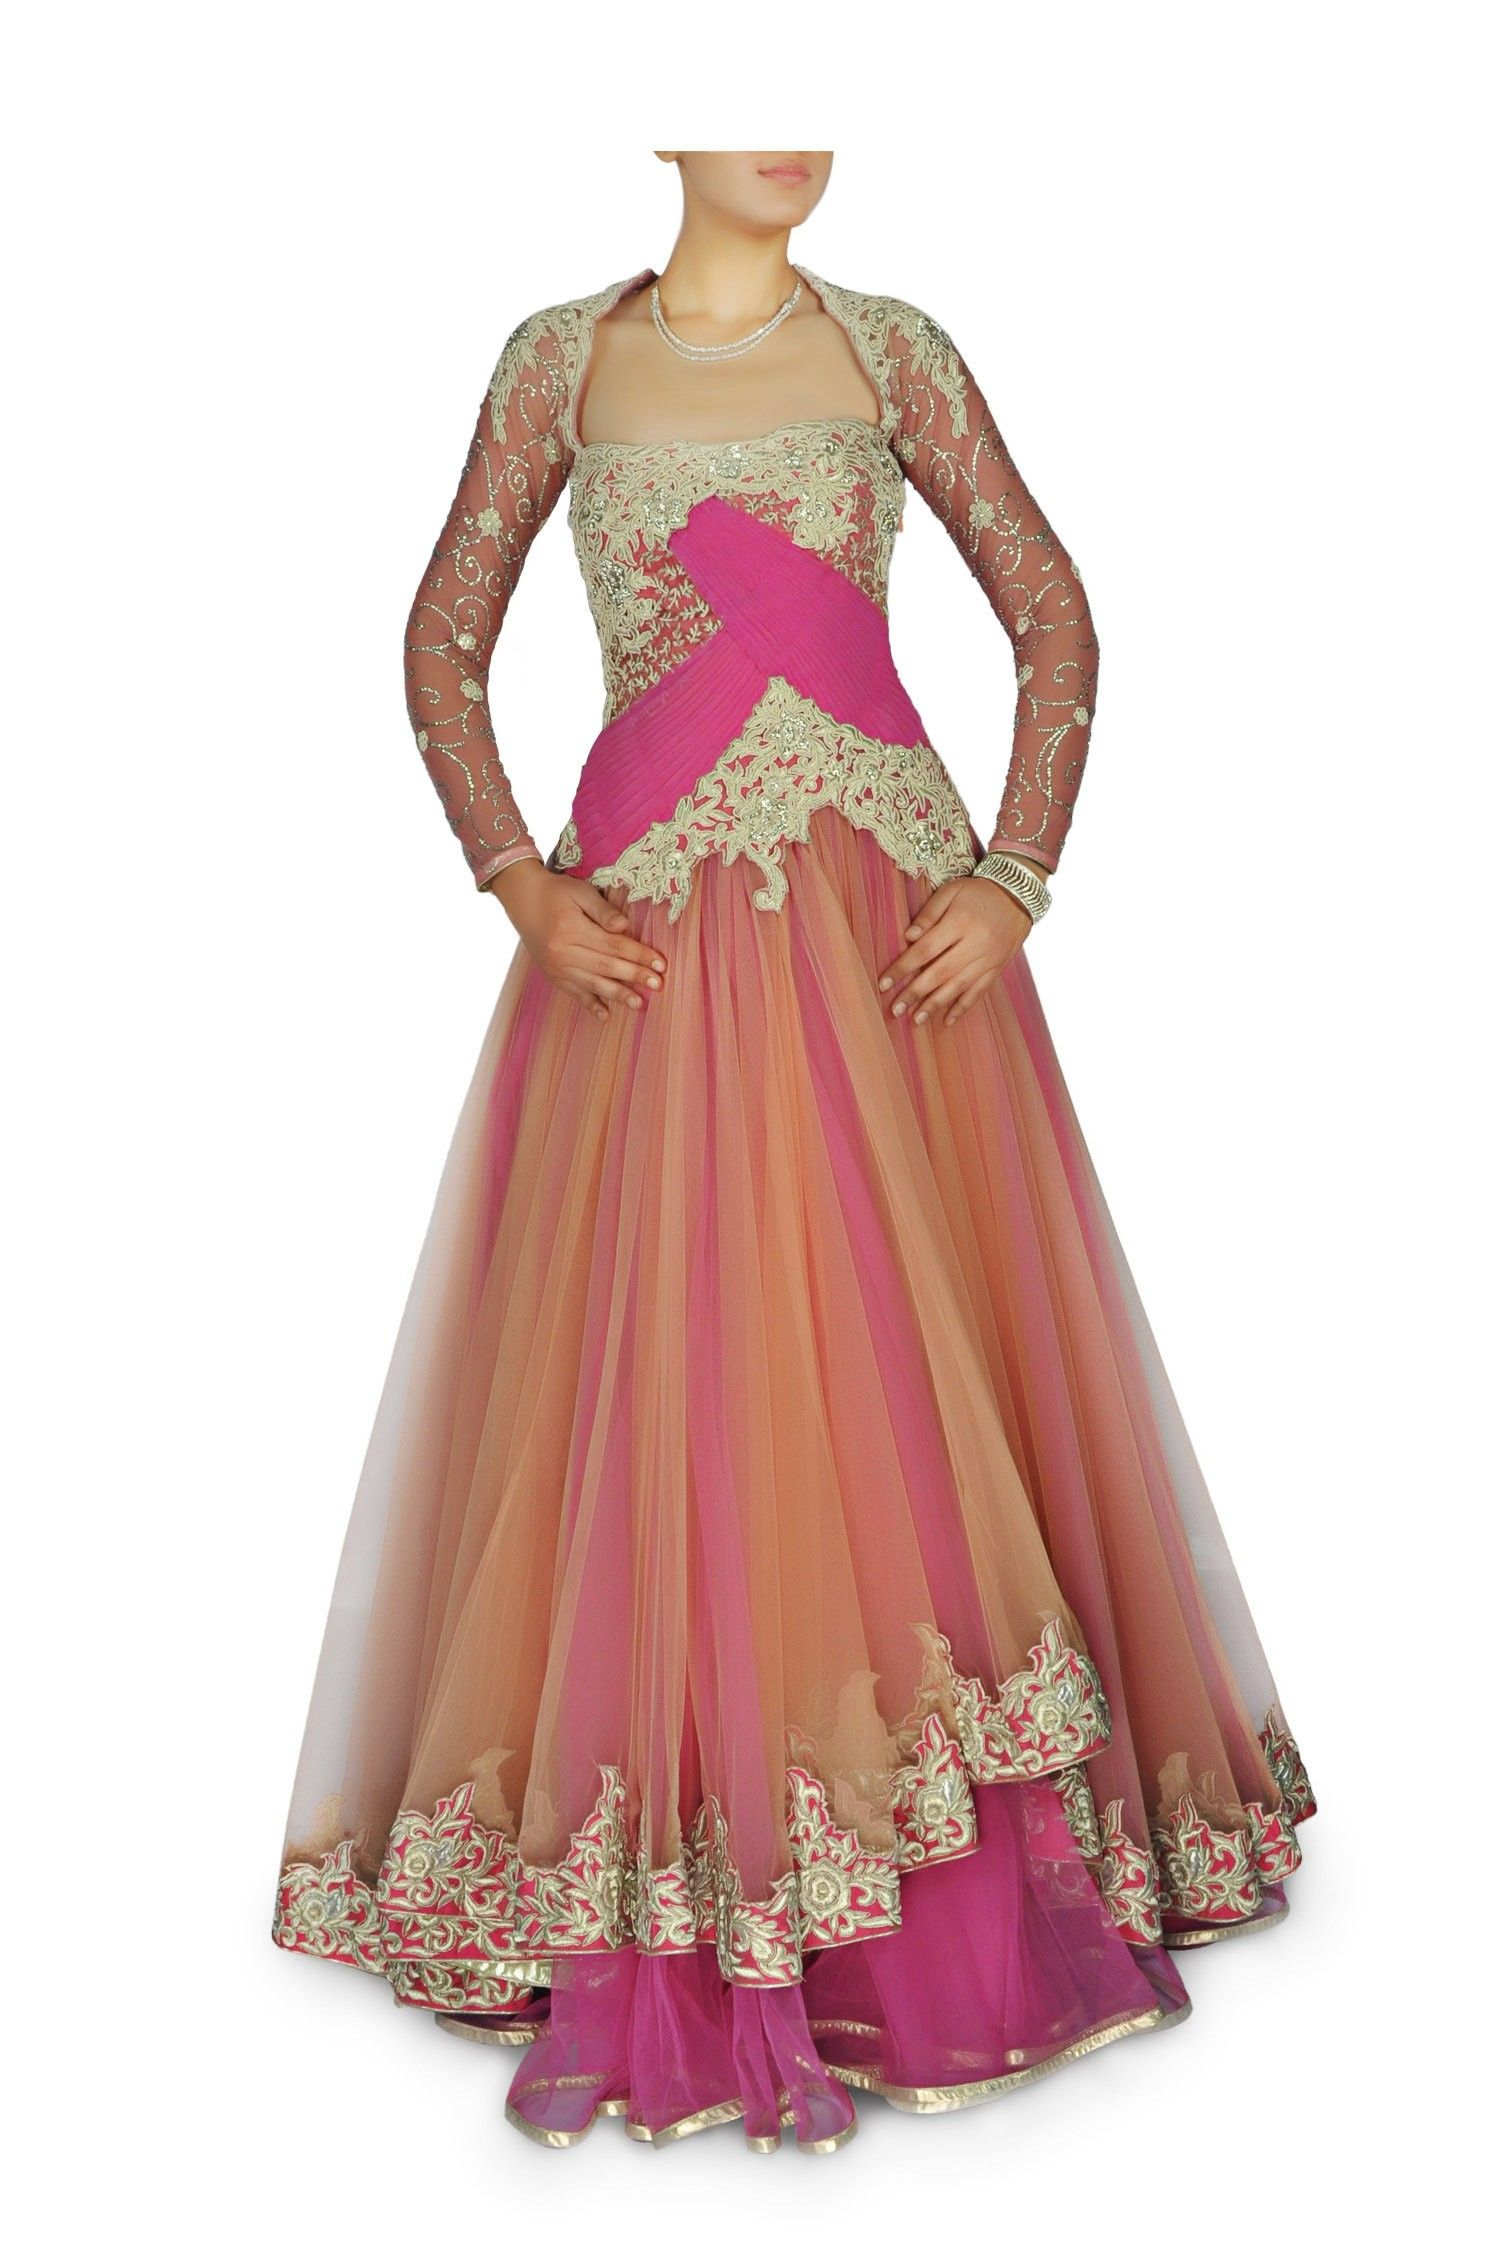 f0c4204df9b9 Featuring a Beige orange and Rani pink layered net gown. Zari work and  rhinestones and pleated pink net panels accentuate the upper half.